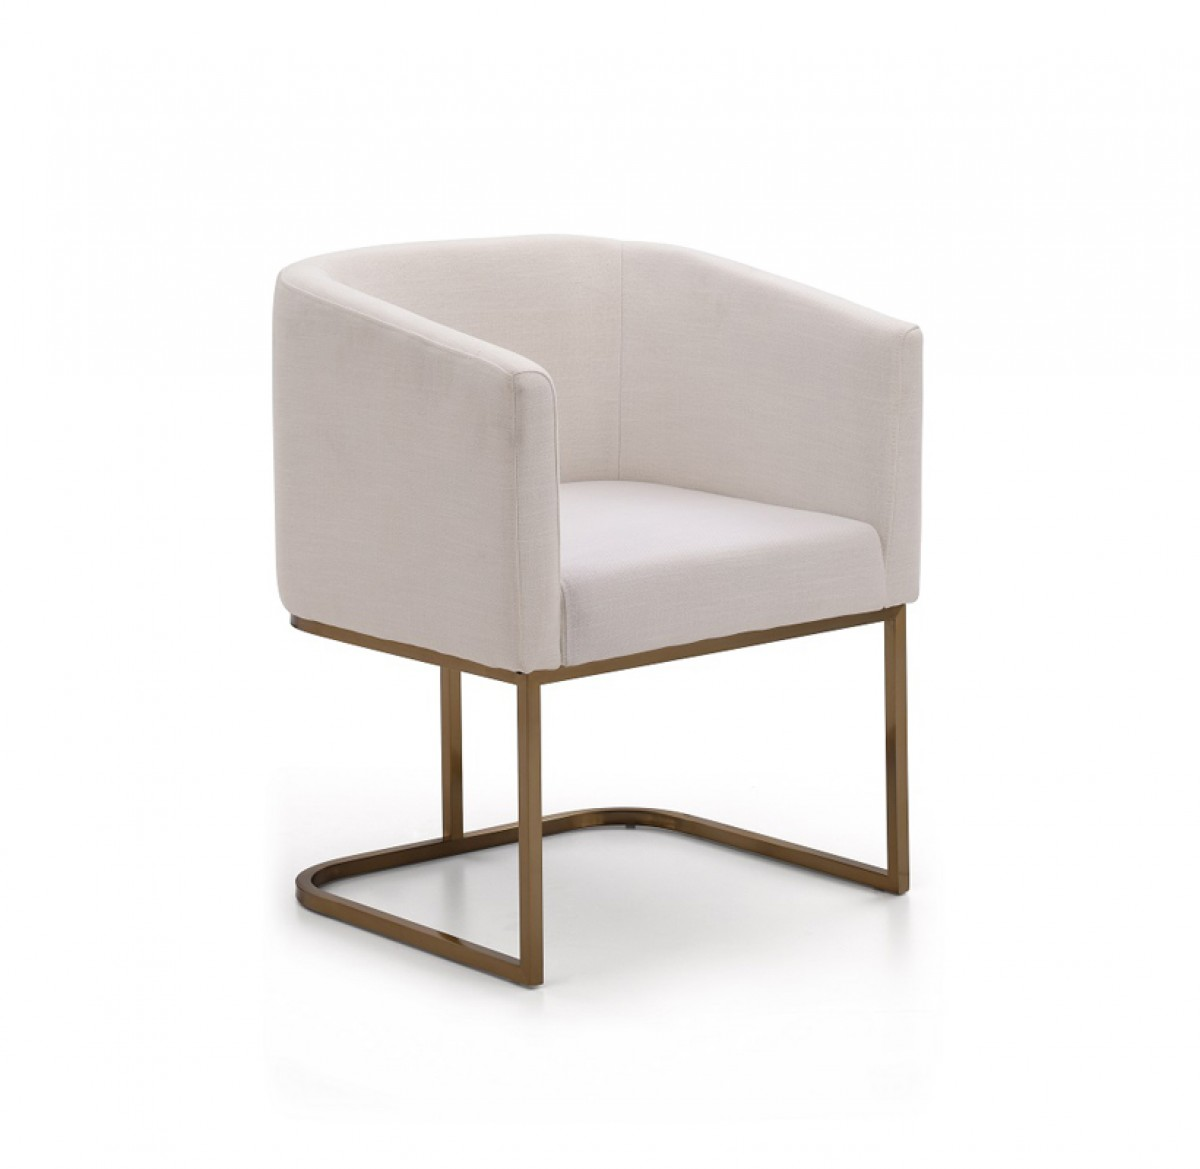 Modrest yukon modern white fabric and antique brass dining for Dining designer chairs